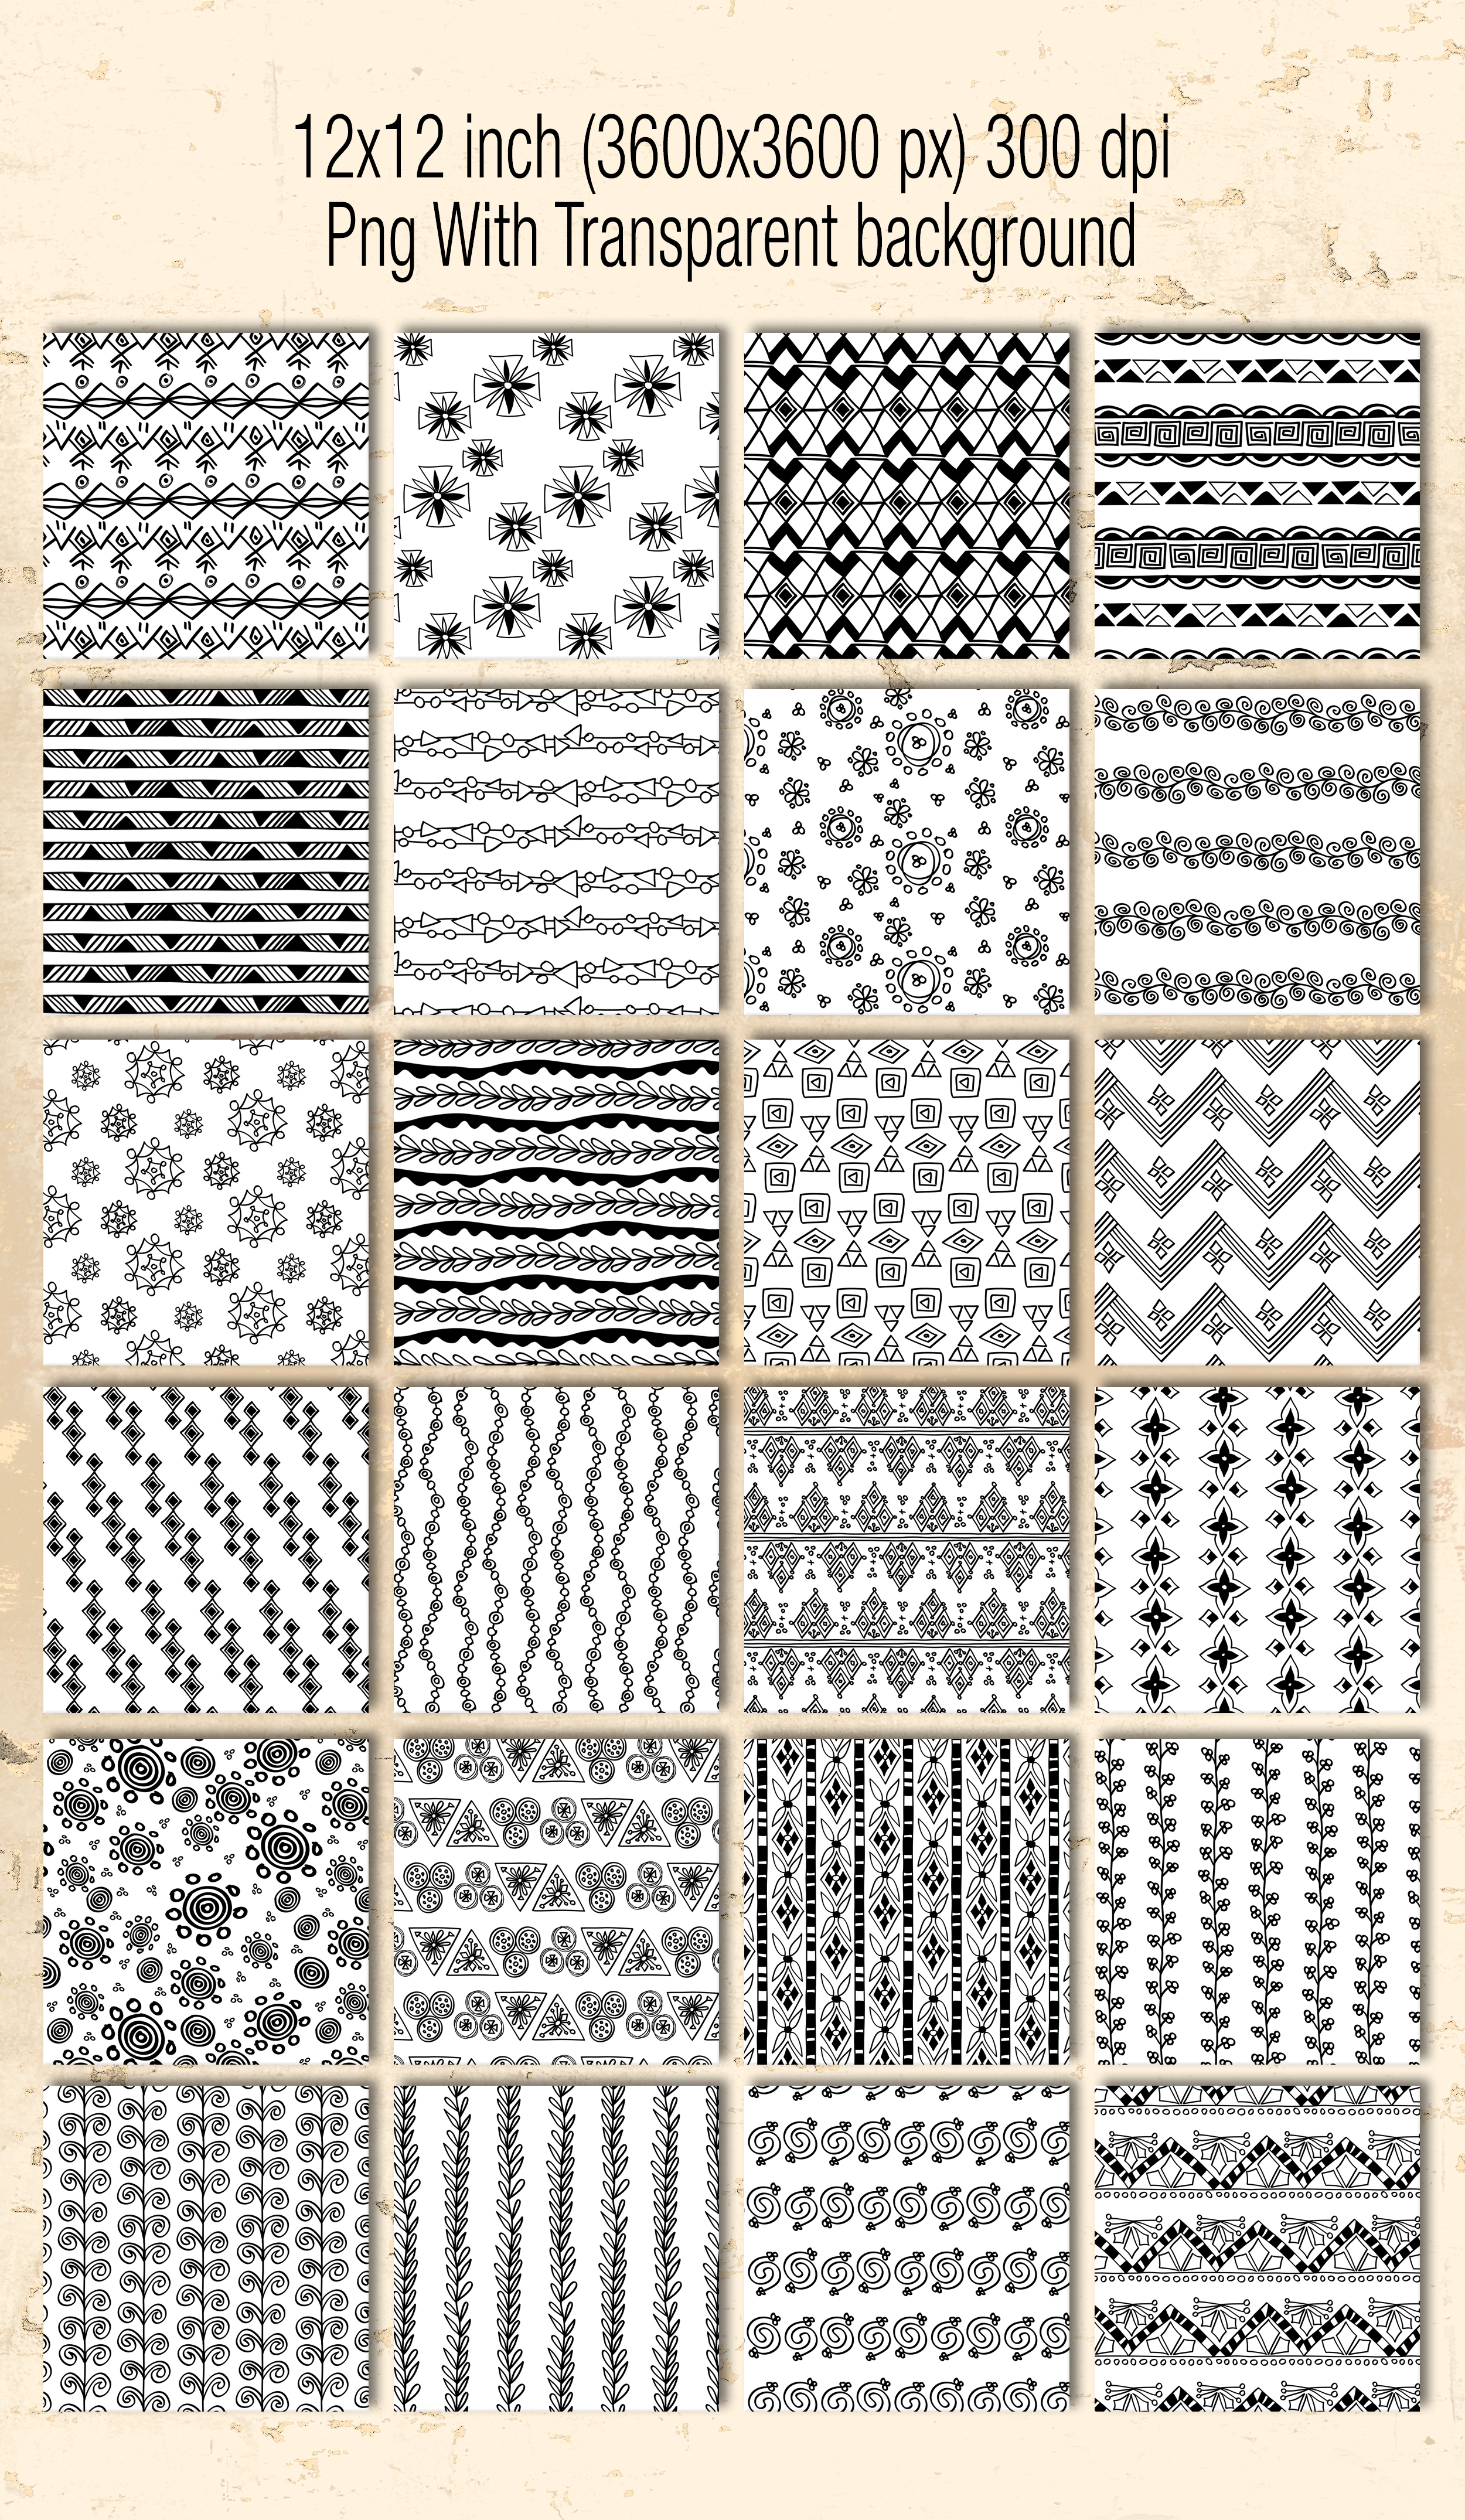 51 hand drawn patterns example image 3